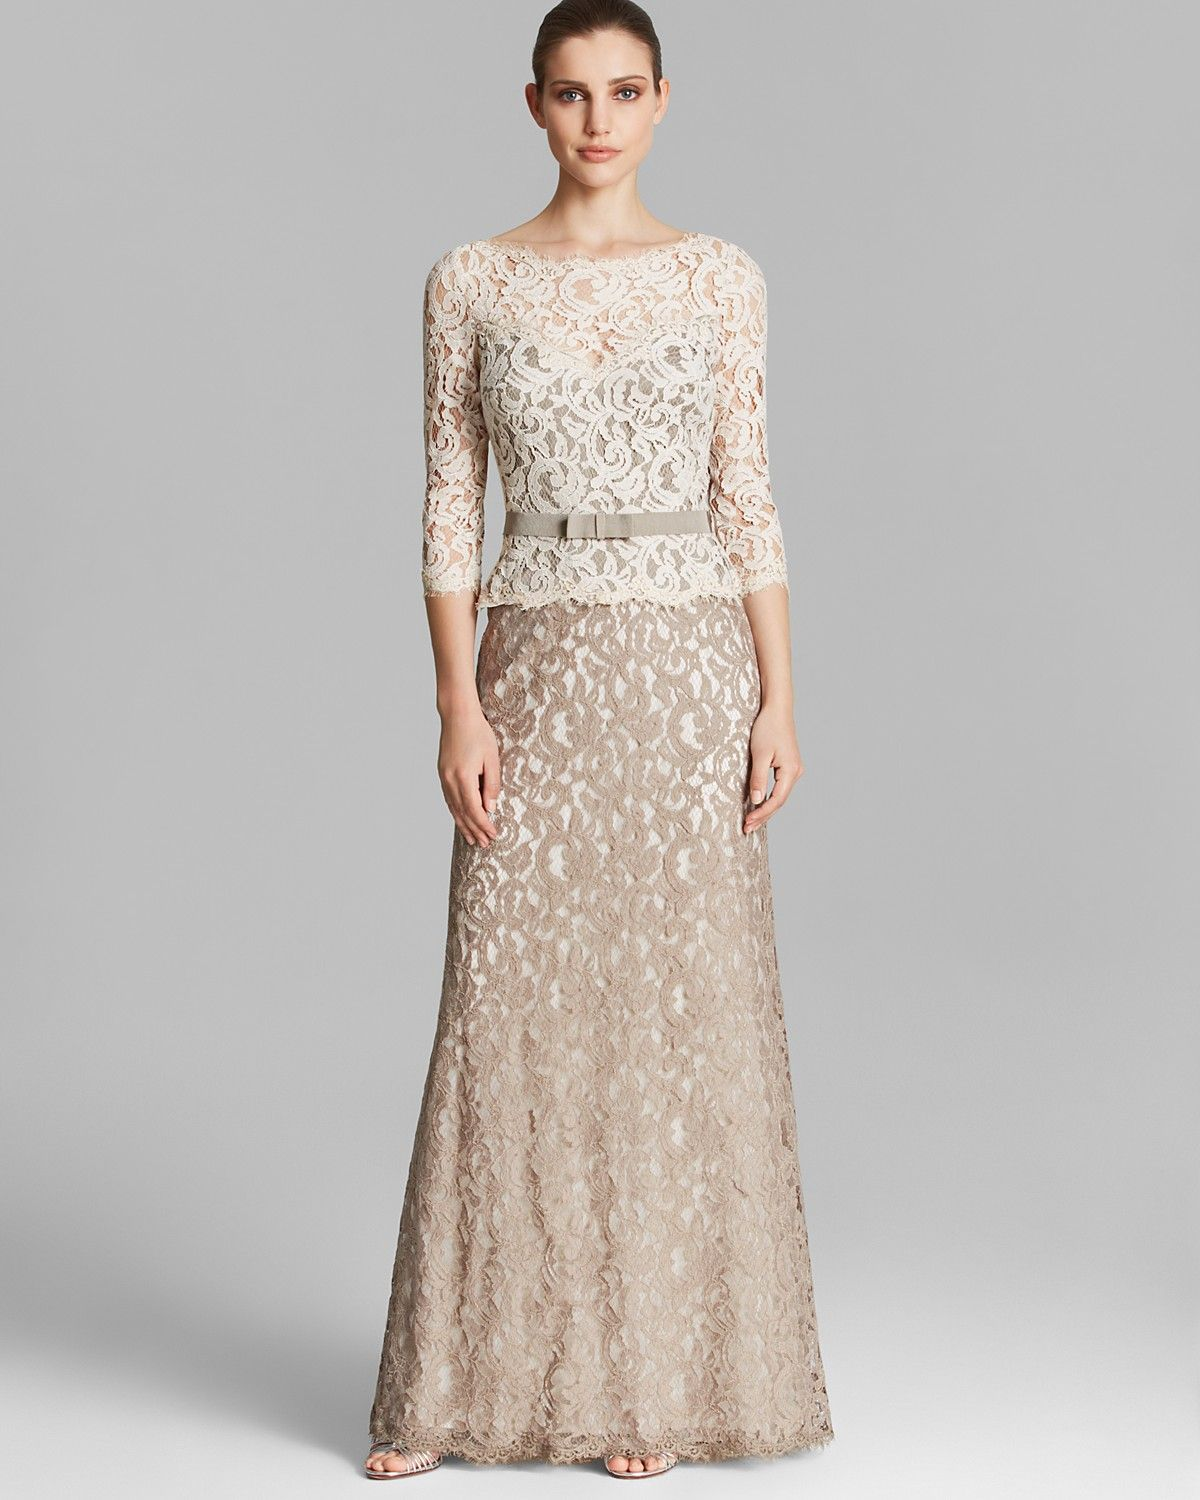 Tadashi Shoji Gown - Three Quarter Sleeve Lace Belted ...